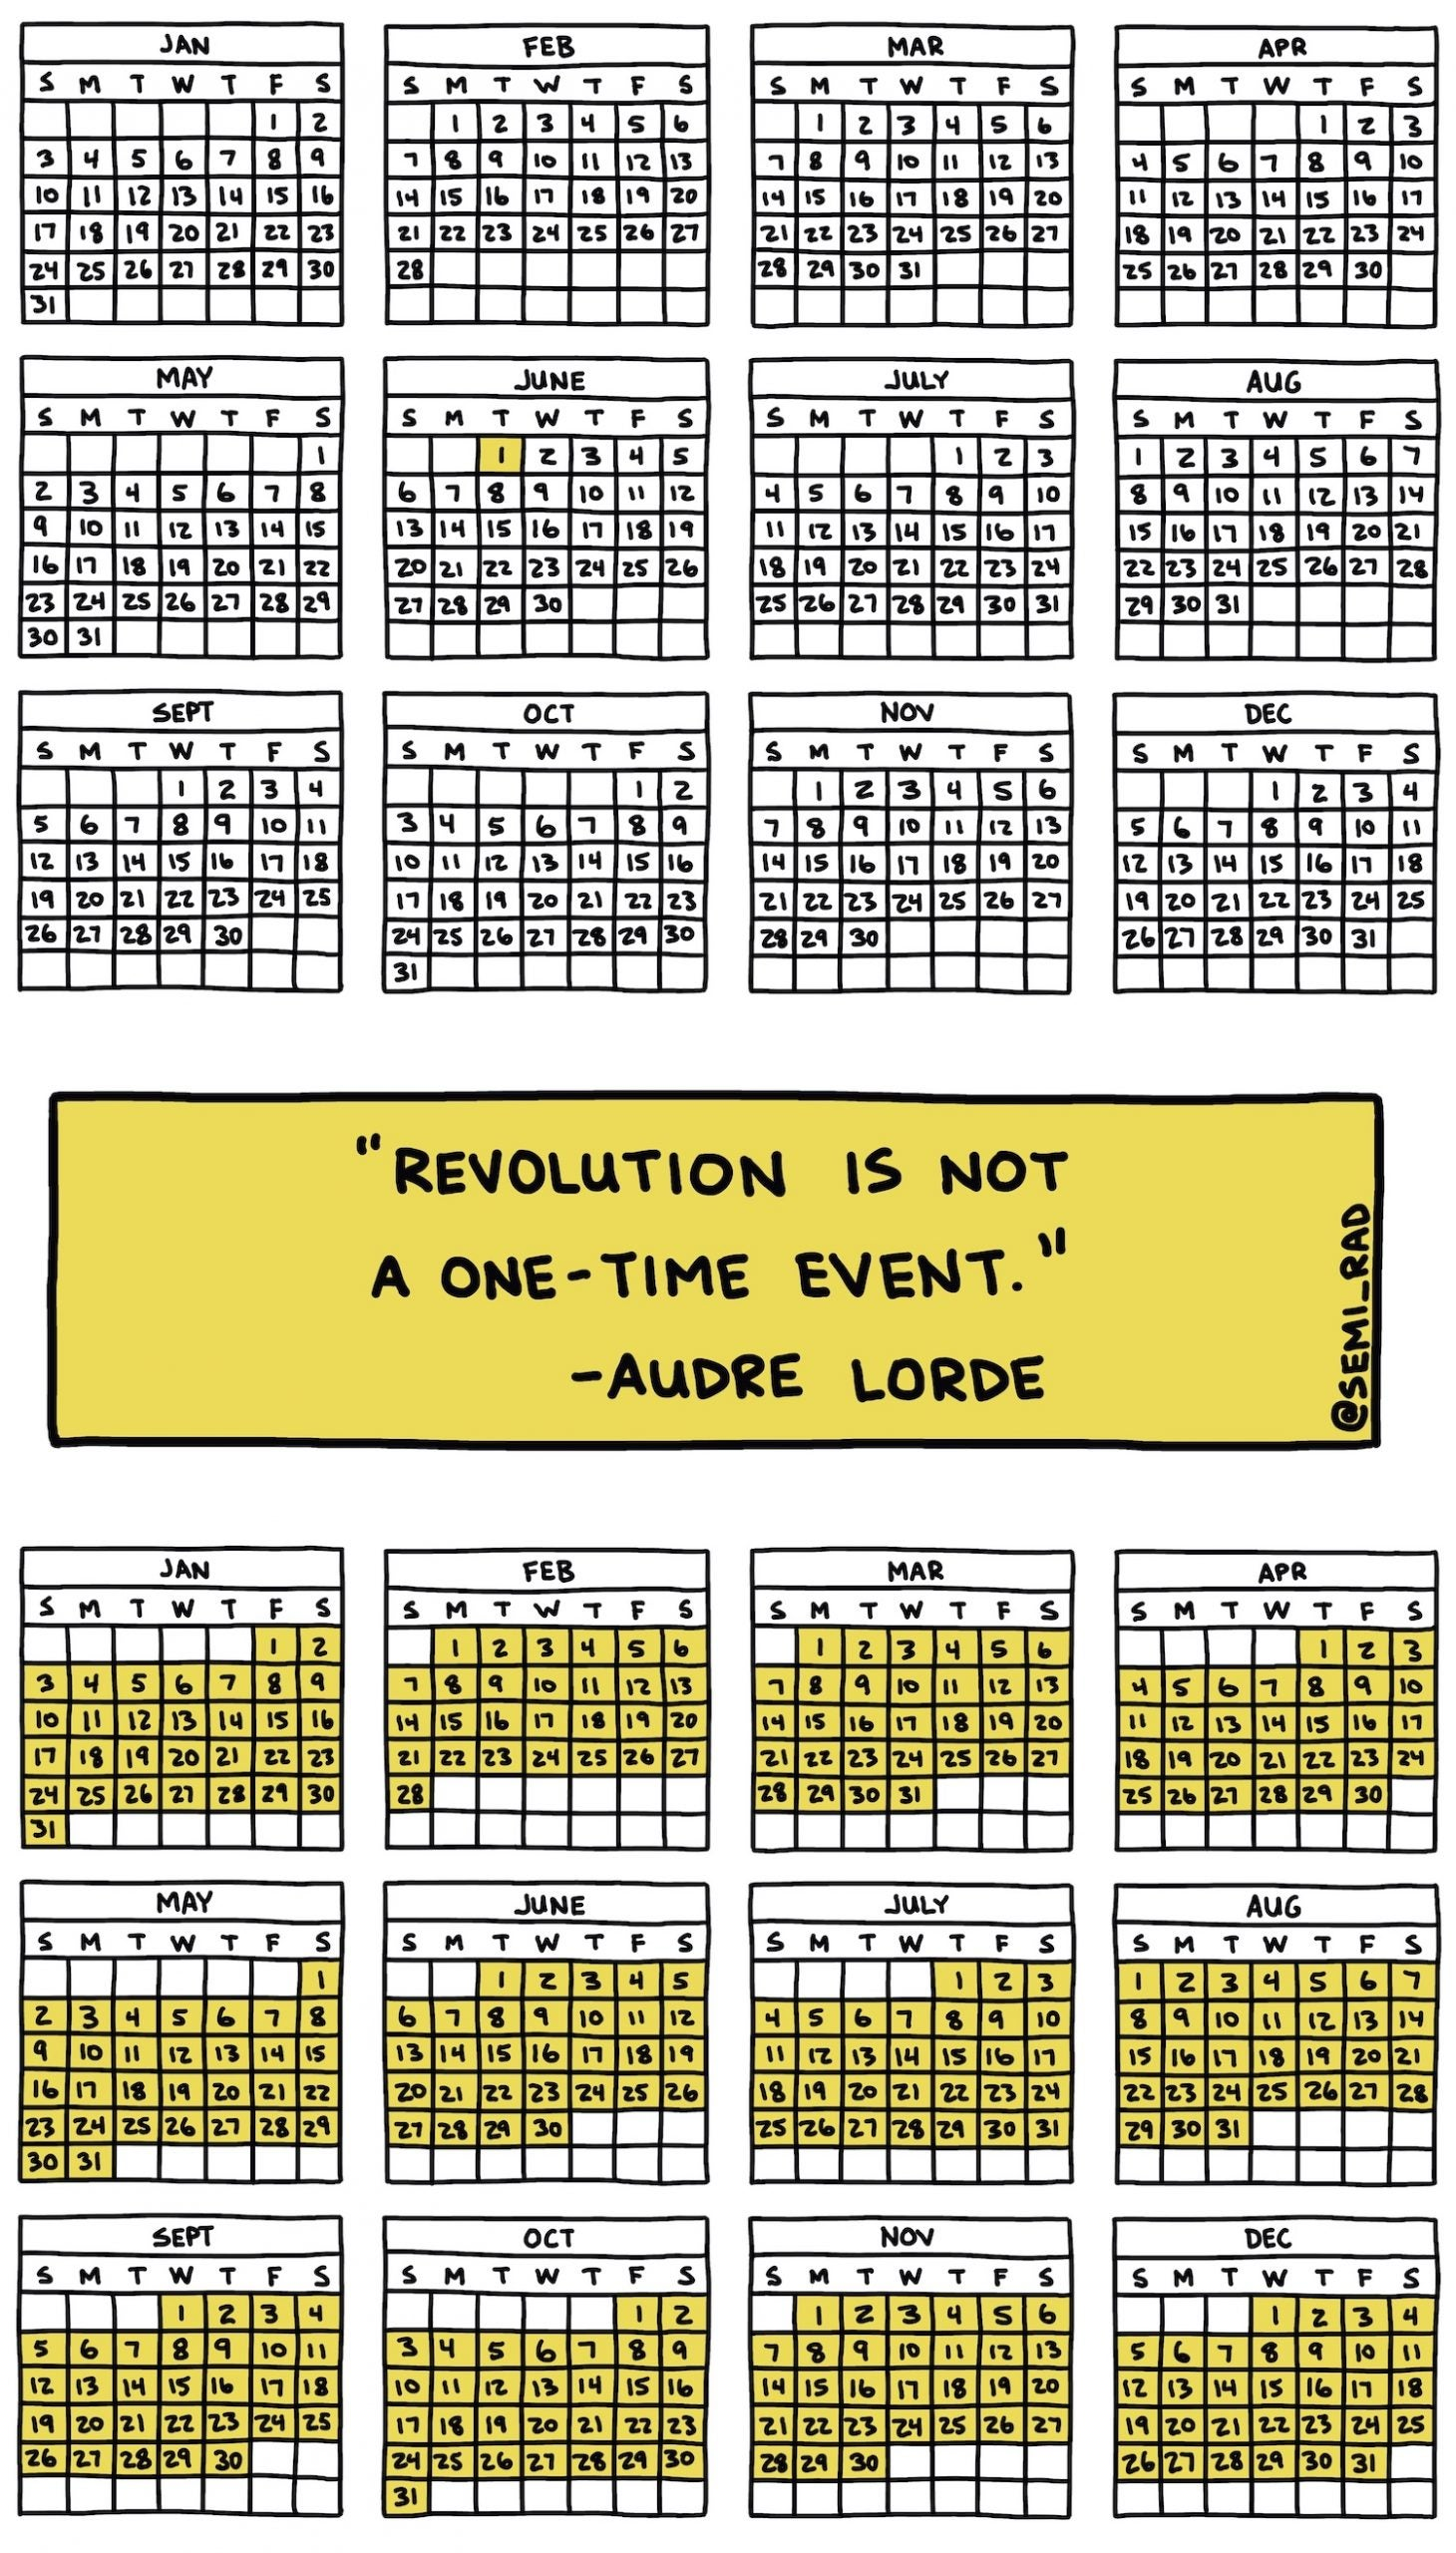 many calendars that show action should be everyday not just one, with an Audre Lorde quote